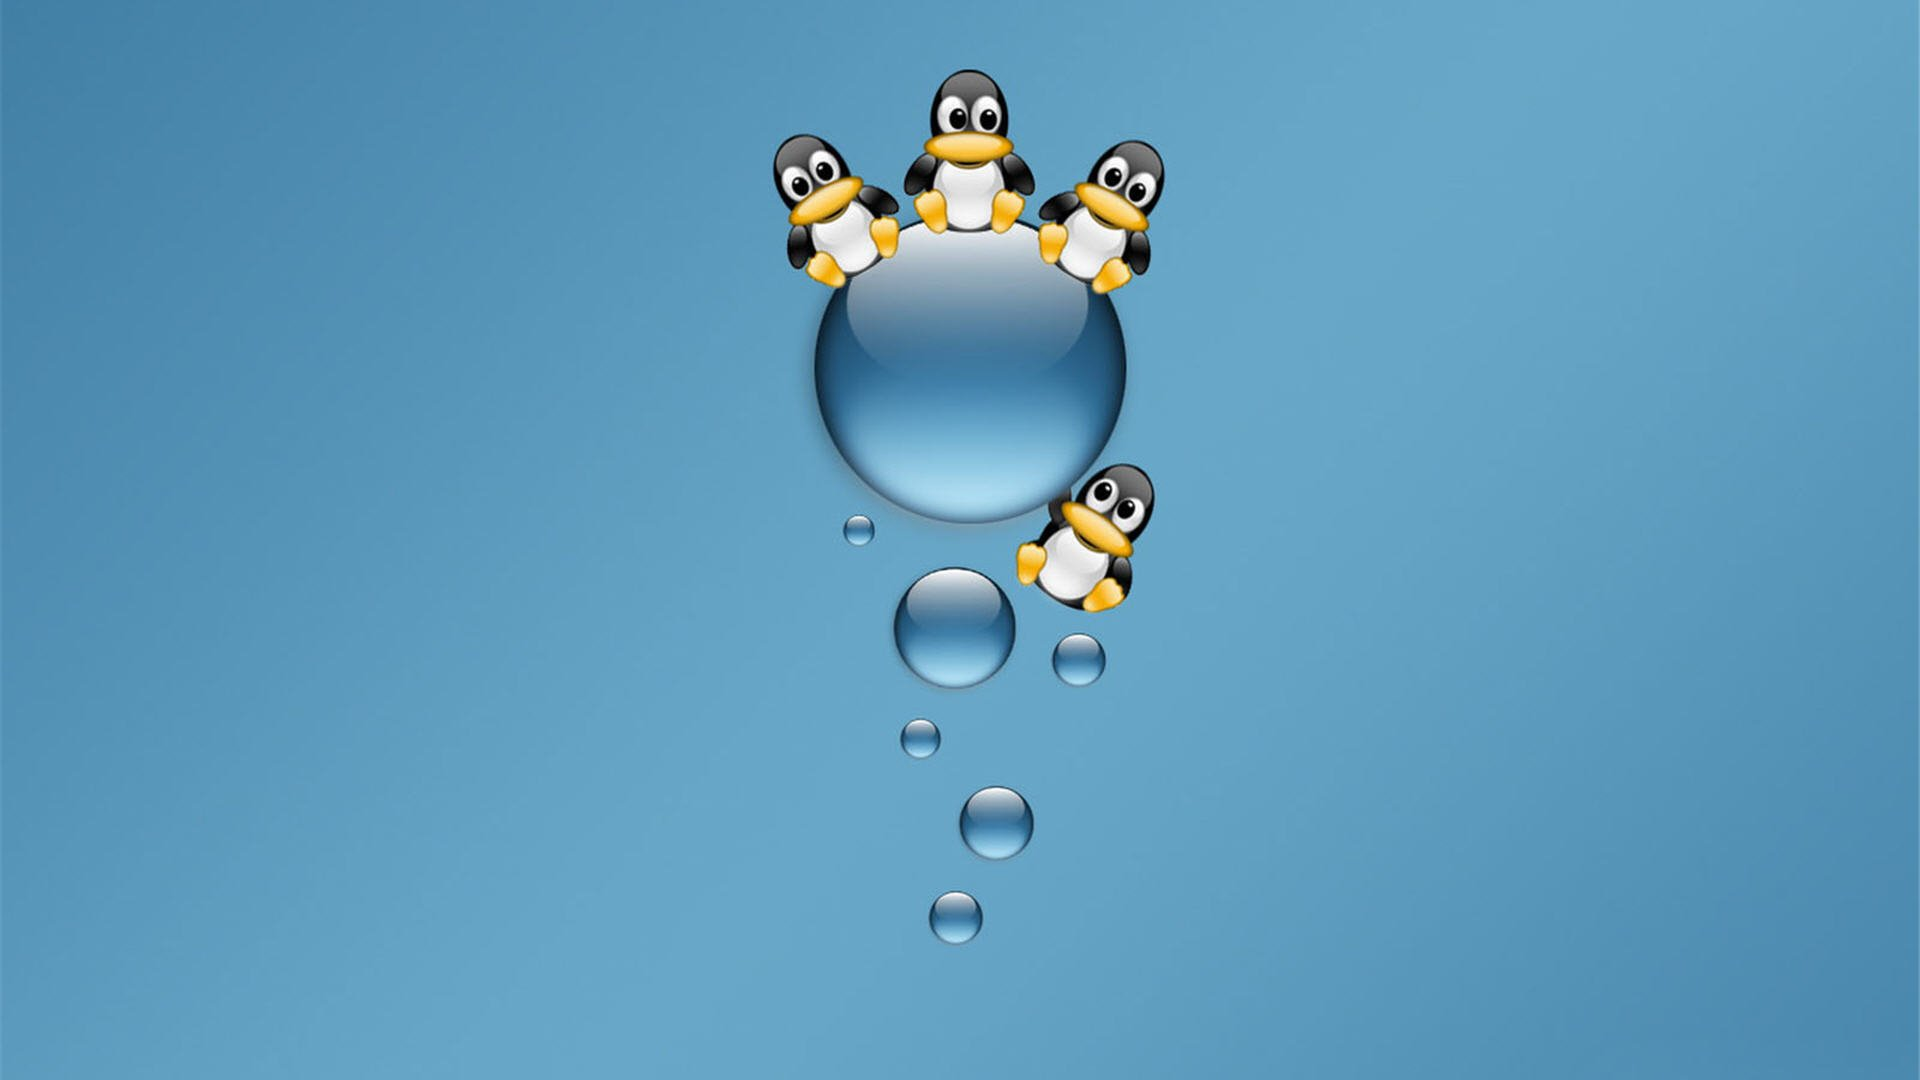 4k penguins wallpapers high quality | download free